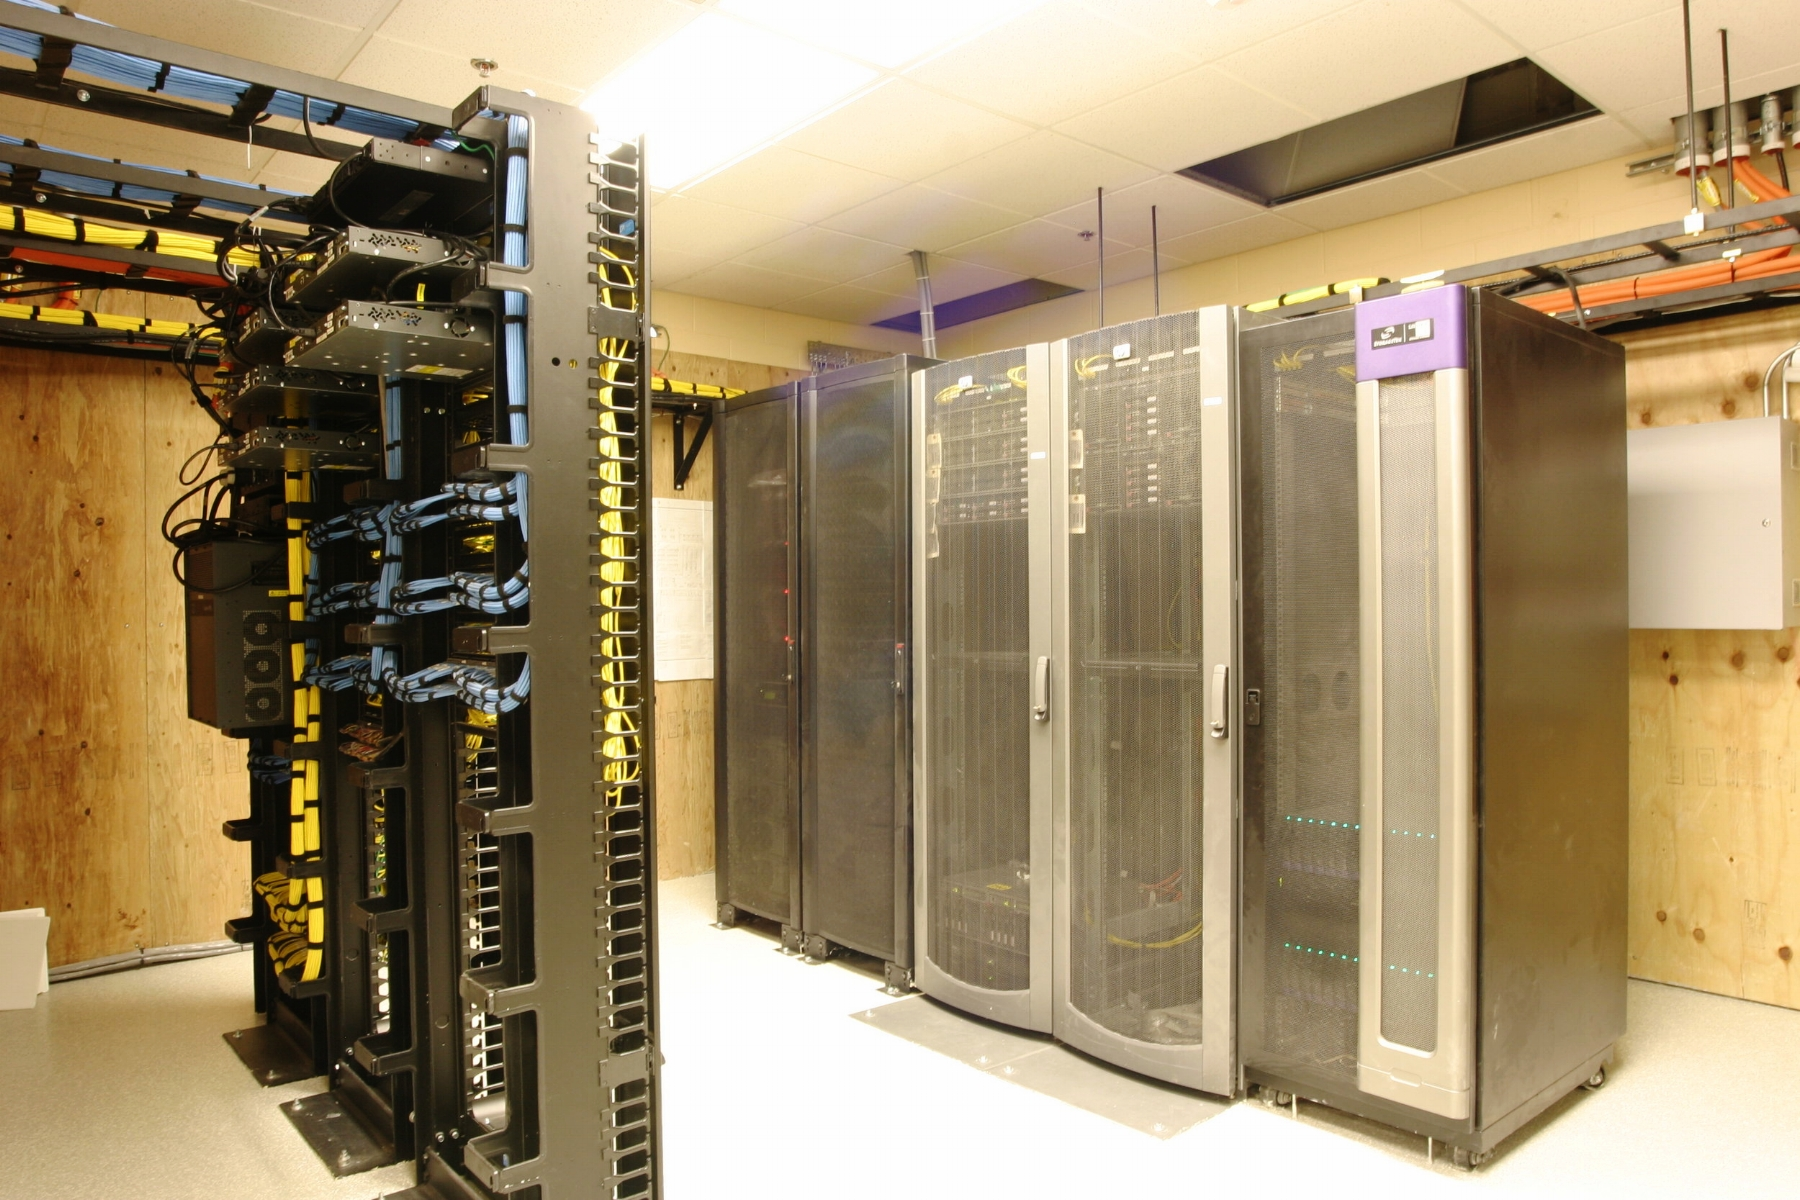 RCC_MLK_Center_ServerRoom